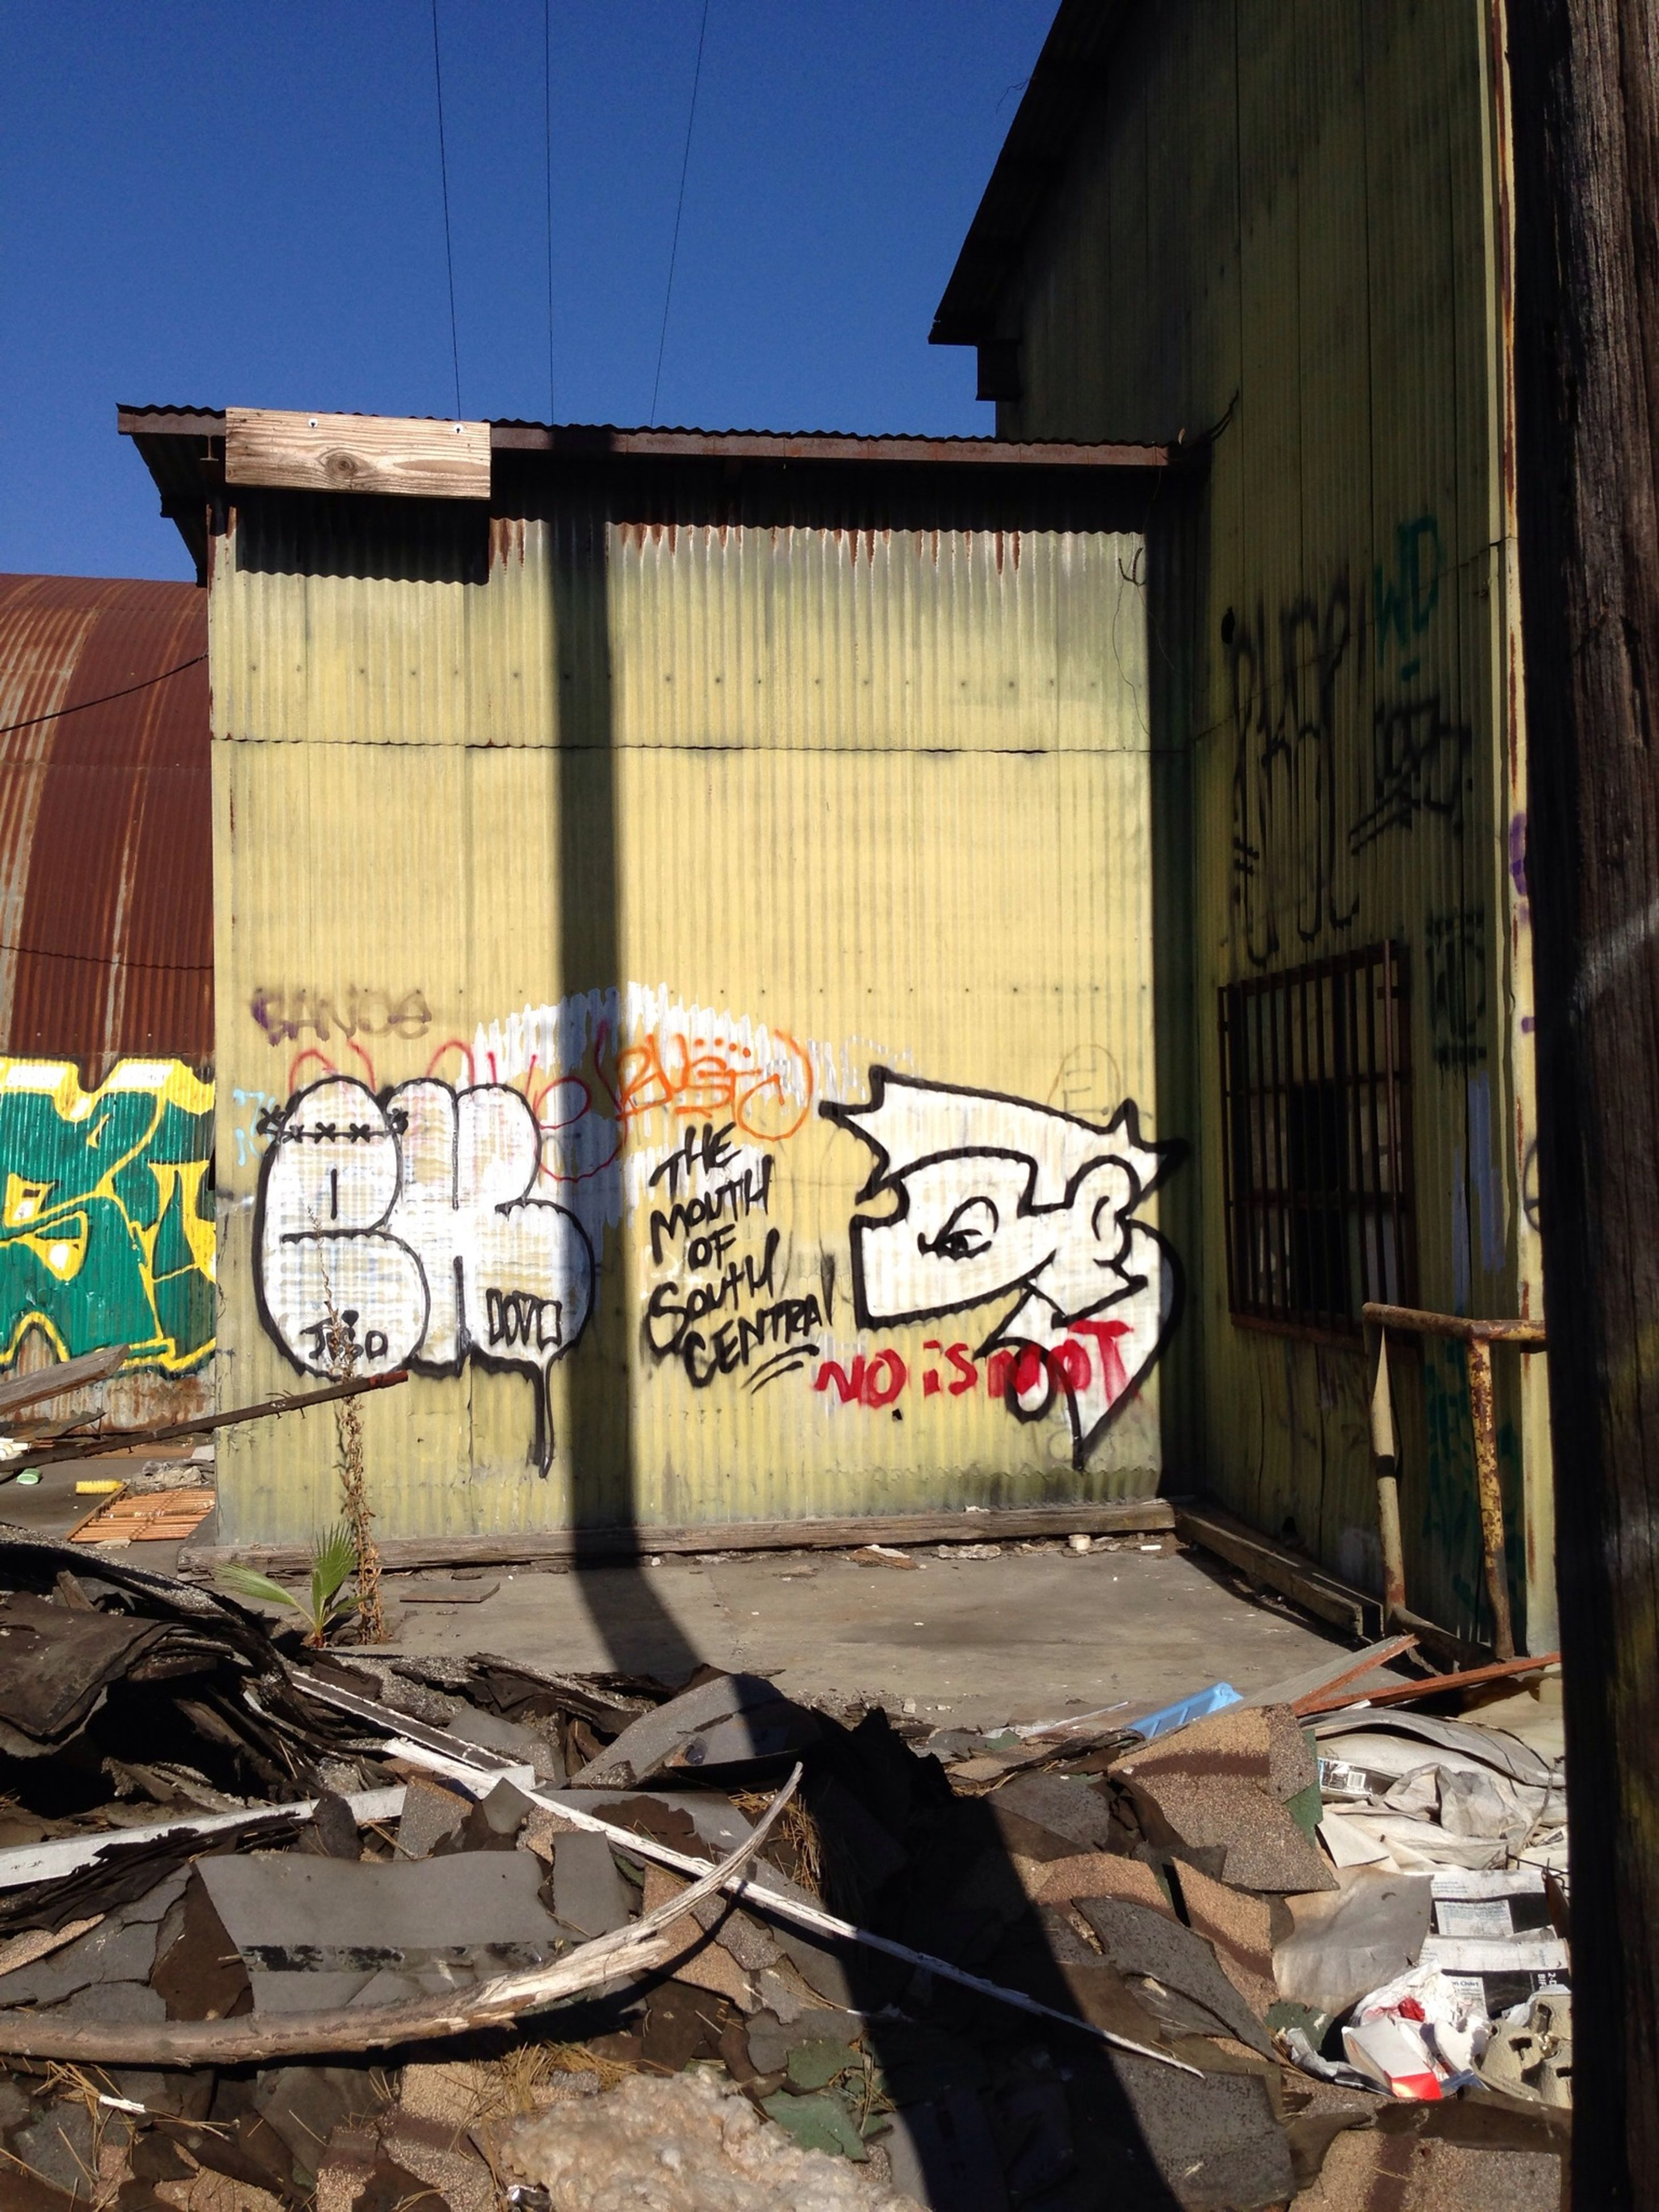 graffiti, architecture, built structure, building exterior, art, creativity, art and craft, text, wall - building feature, street art, building, western script, vandalism, city, day, abandoned, outdoors, communication, multi colored, sunlight